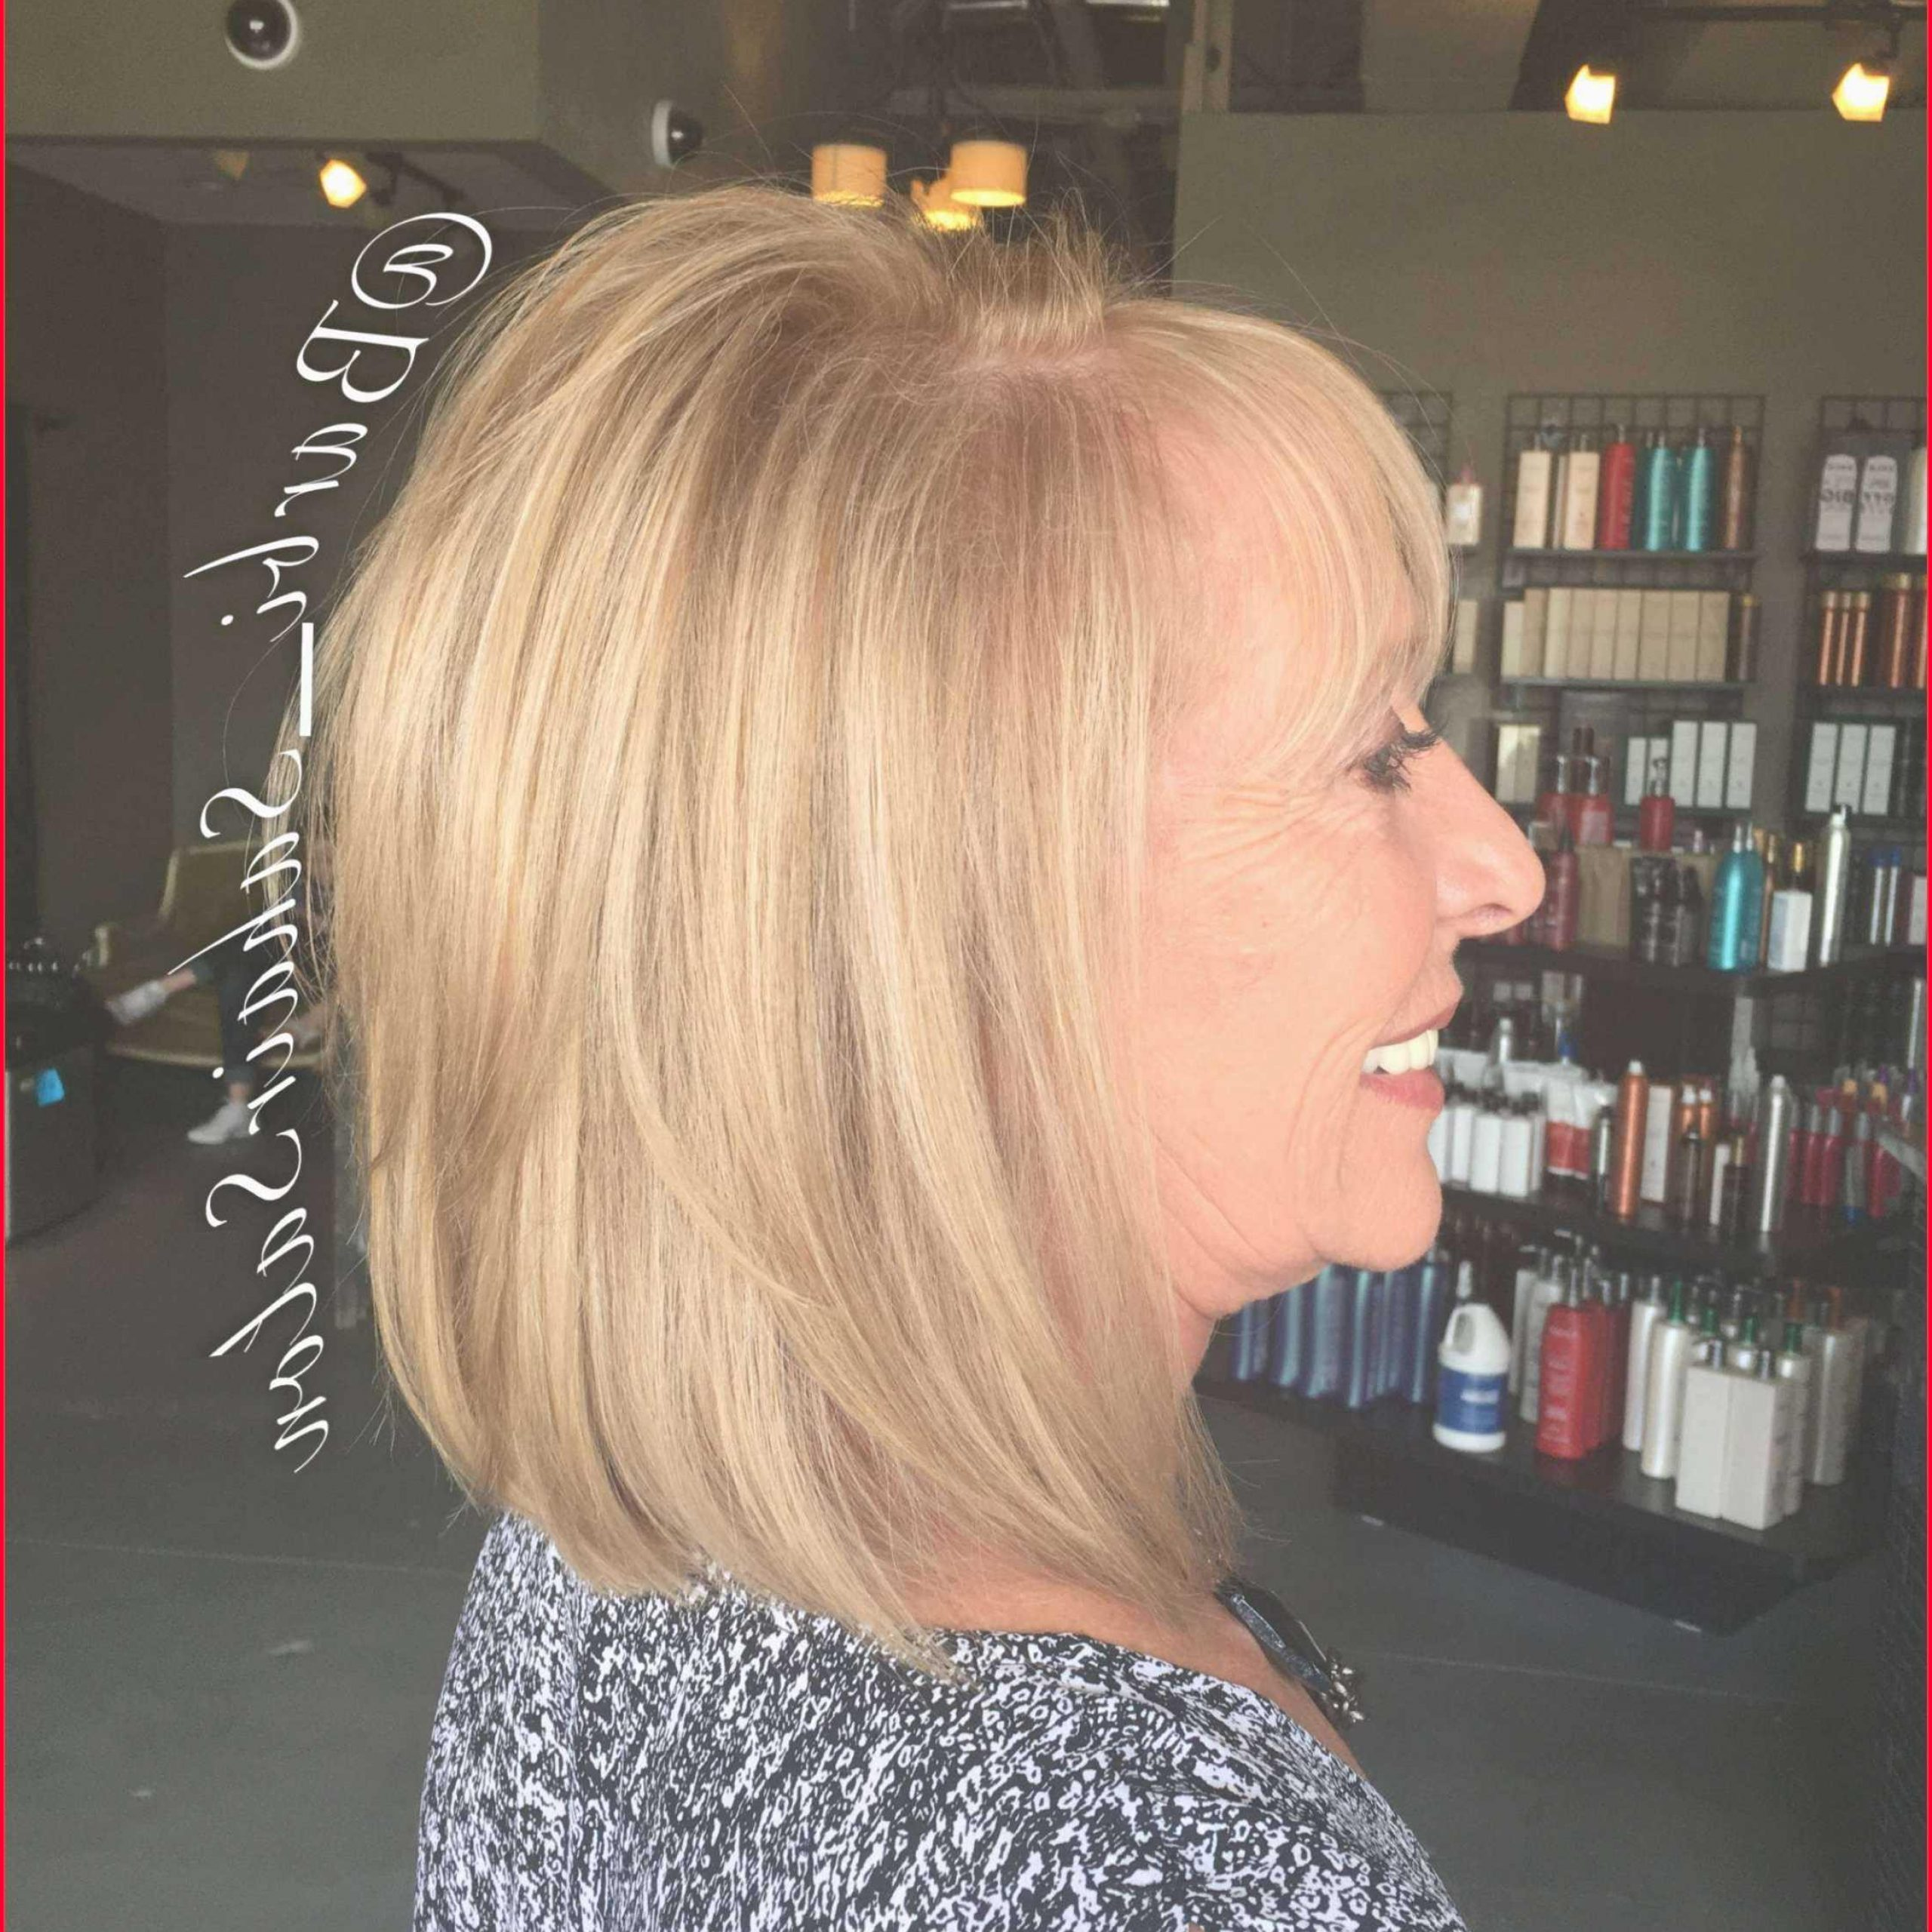 New Short Haircut For Thick Hair Gallery Of Haircuts Tips For Well Known Gorgeous Bob Hairstyles For Thick Hair (View 16 of 20)